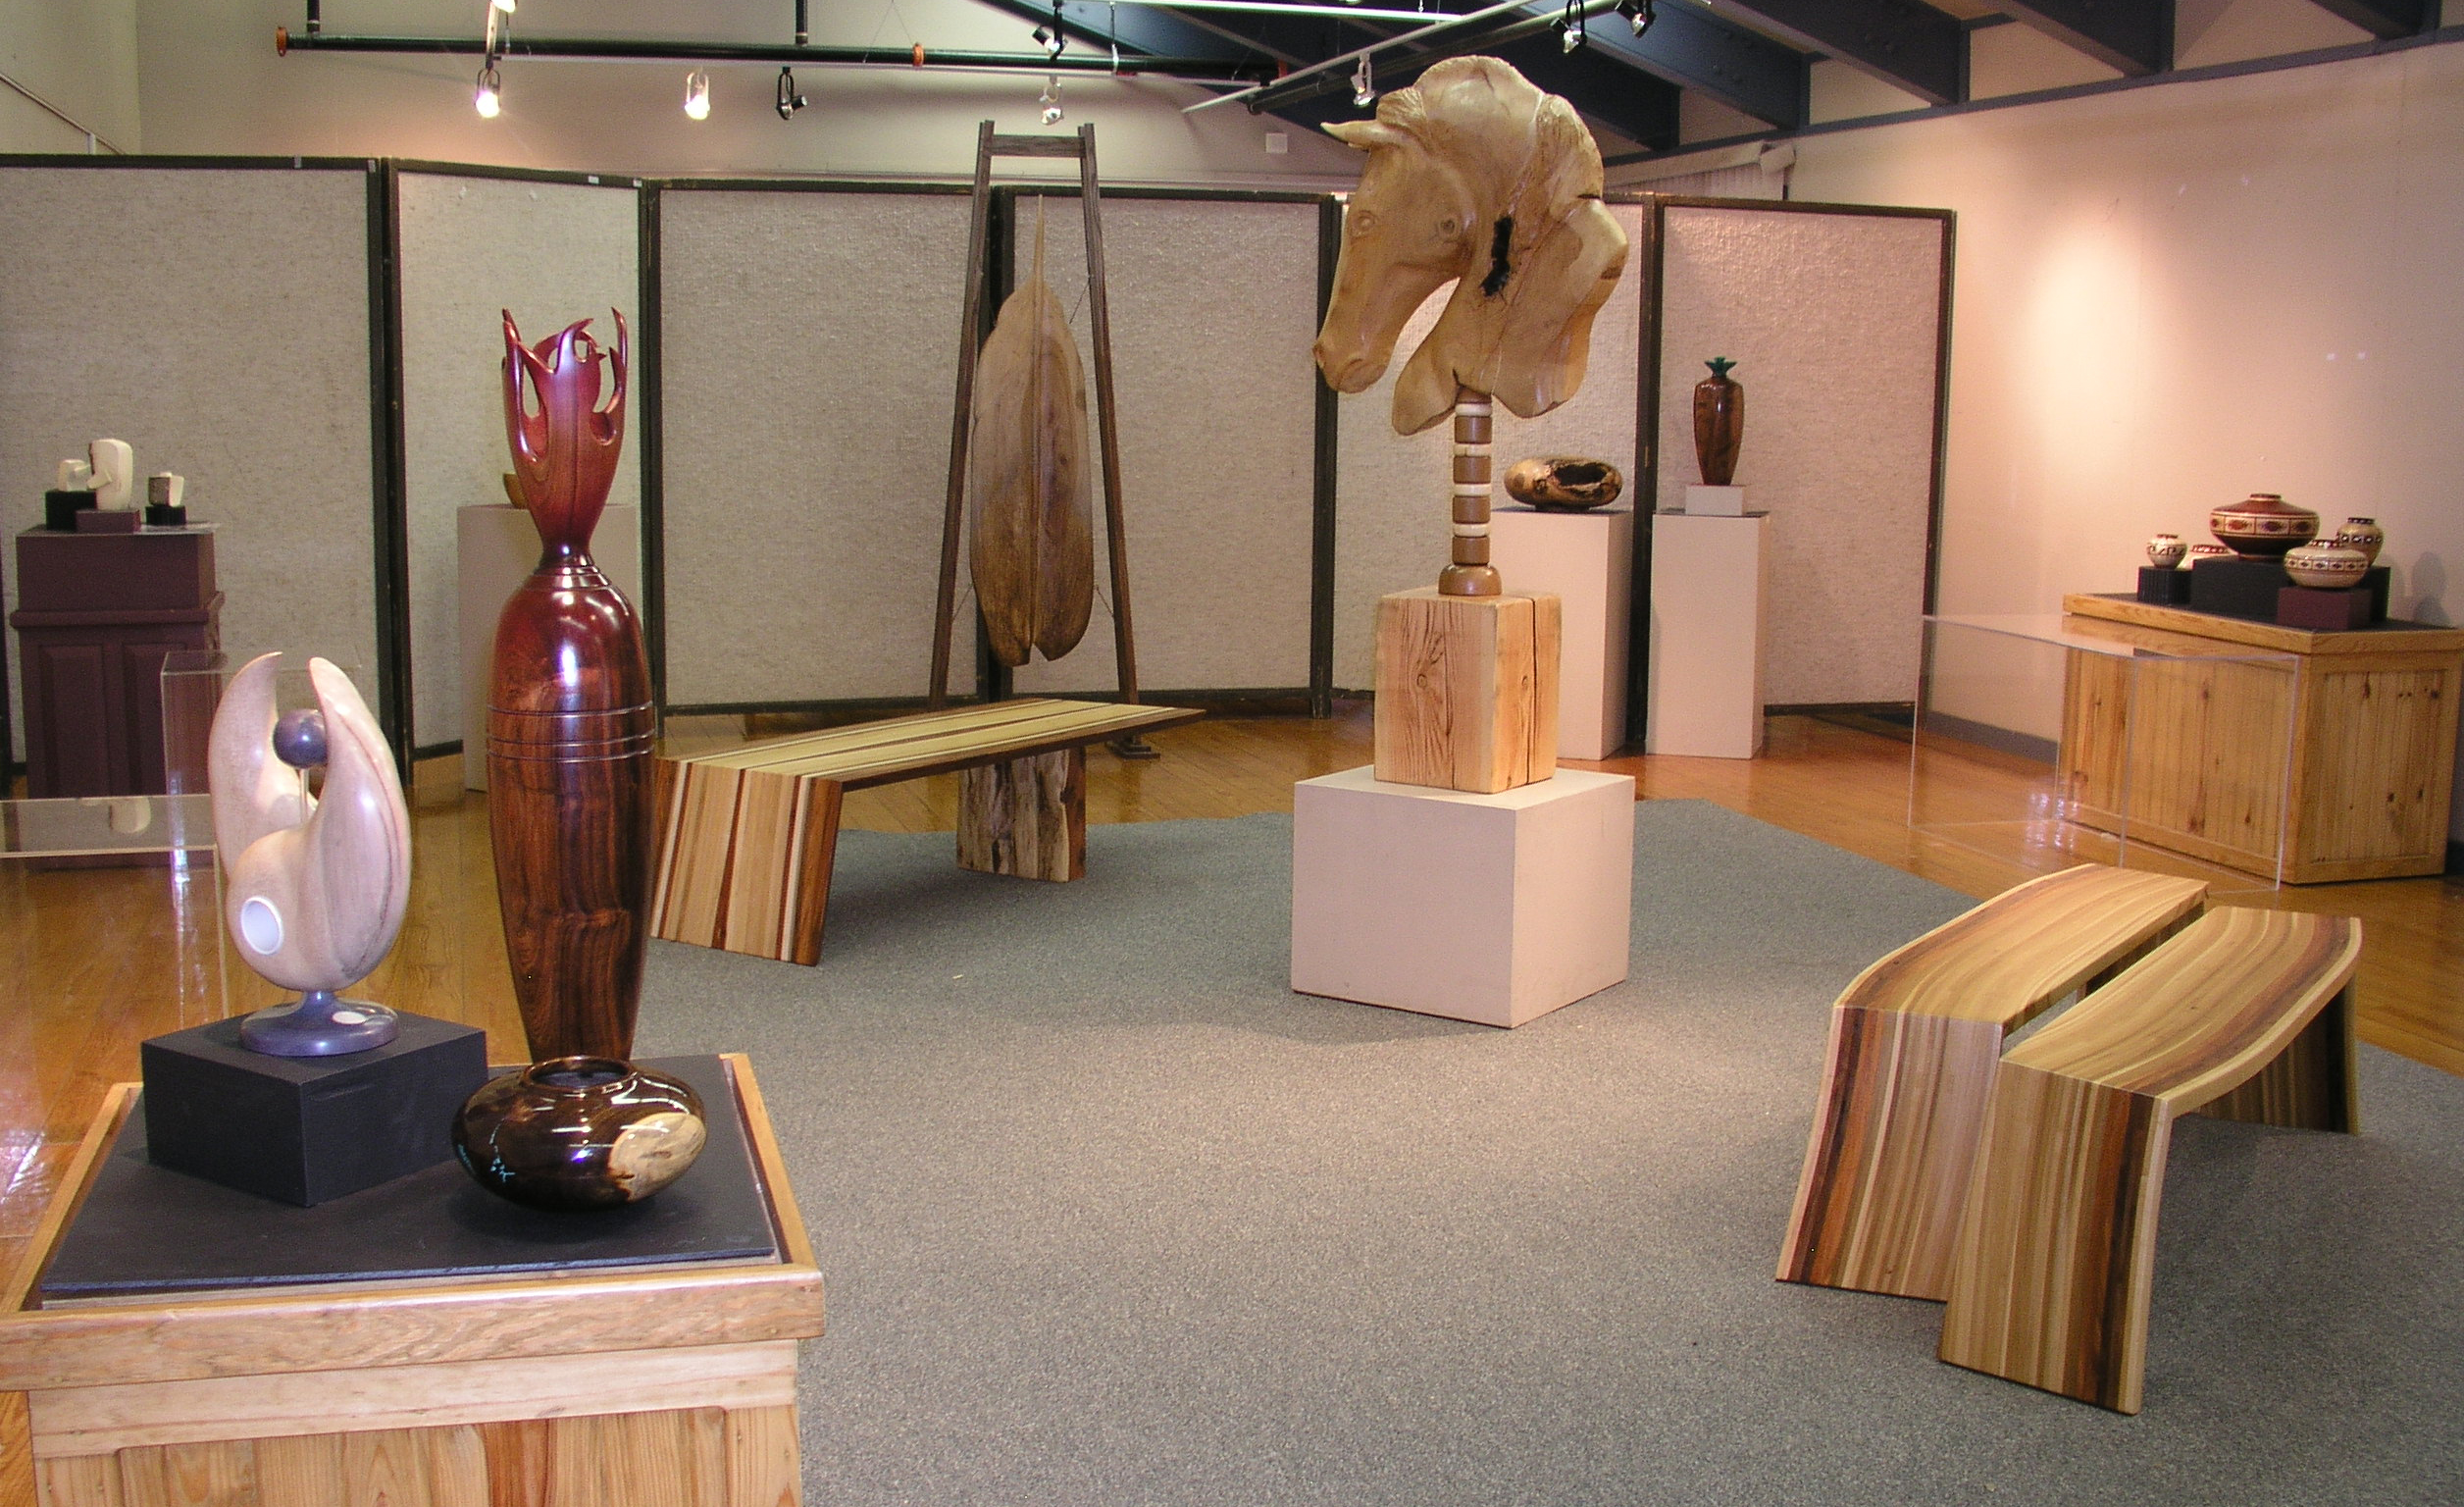 Artist of the year gallery at he Forest Heritage Center Museum